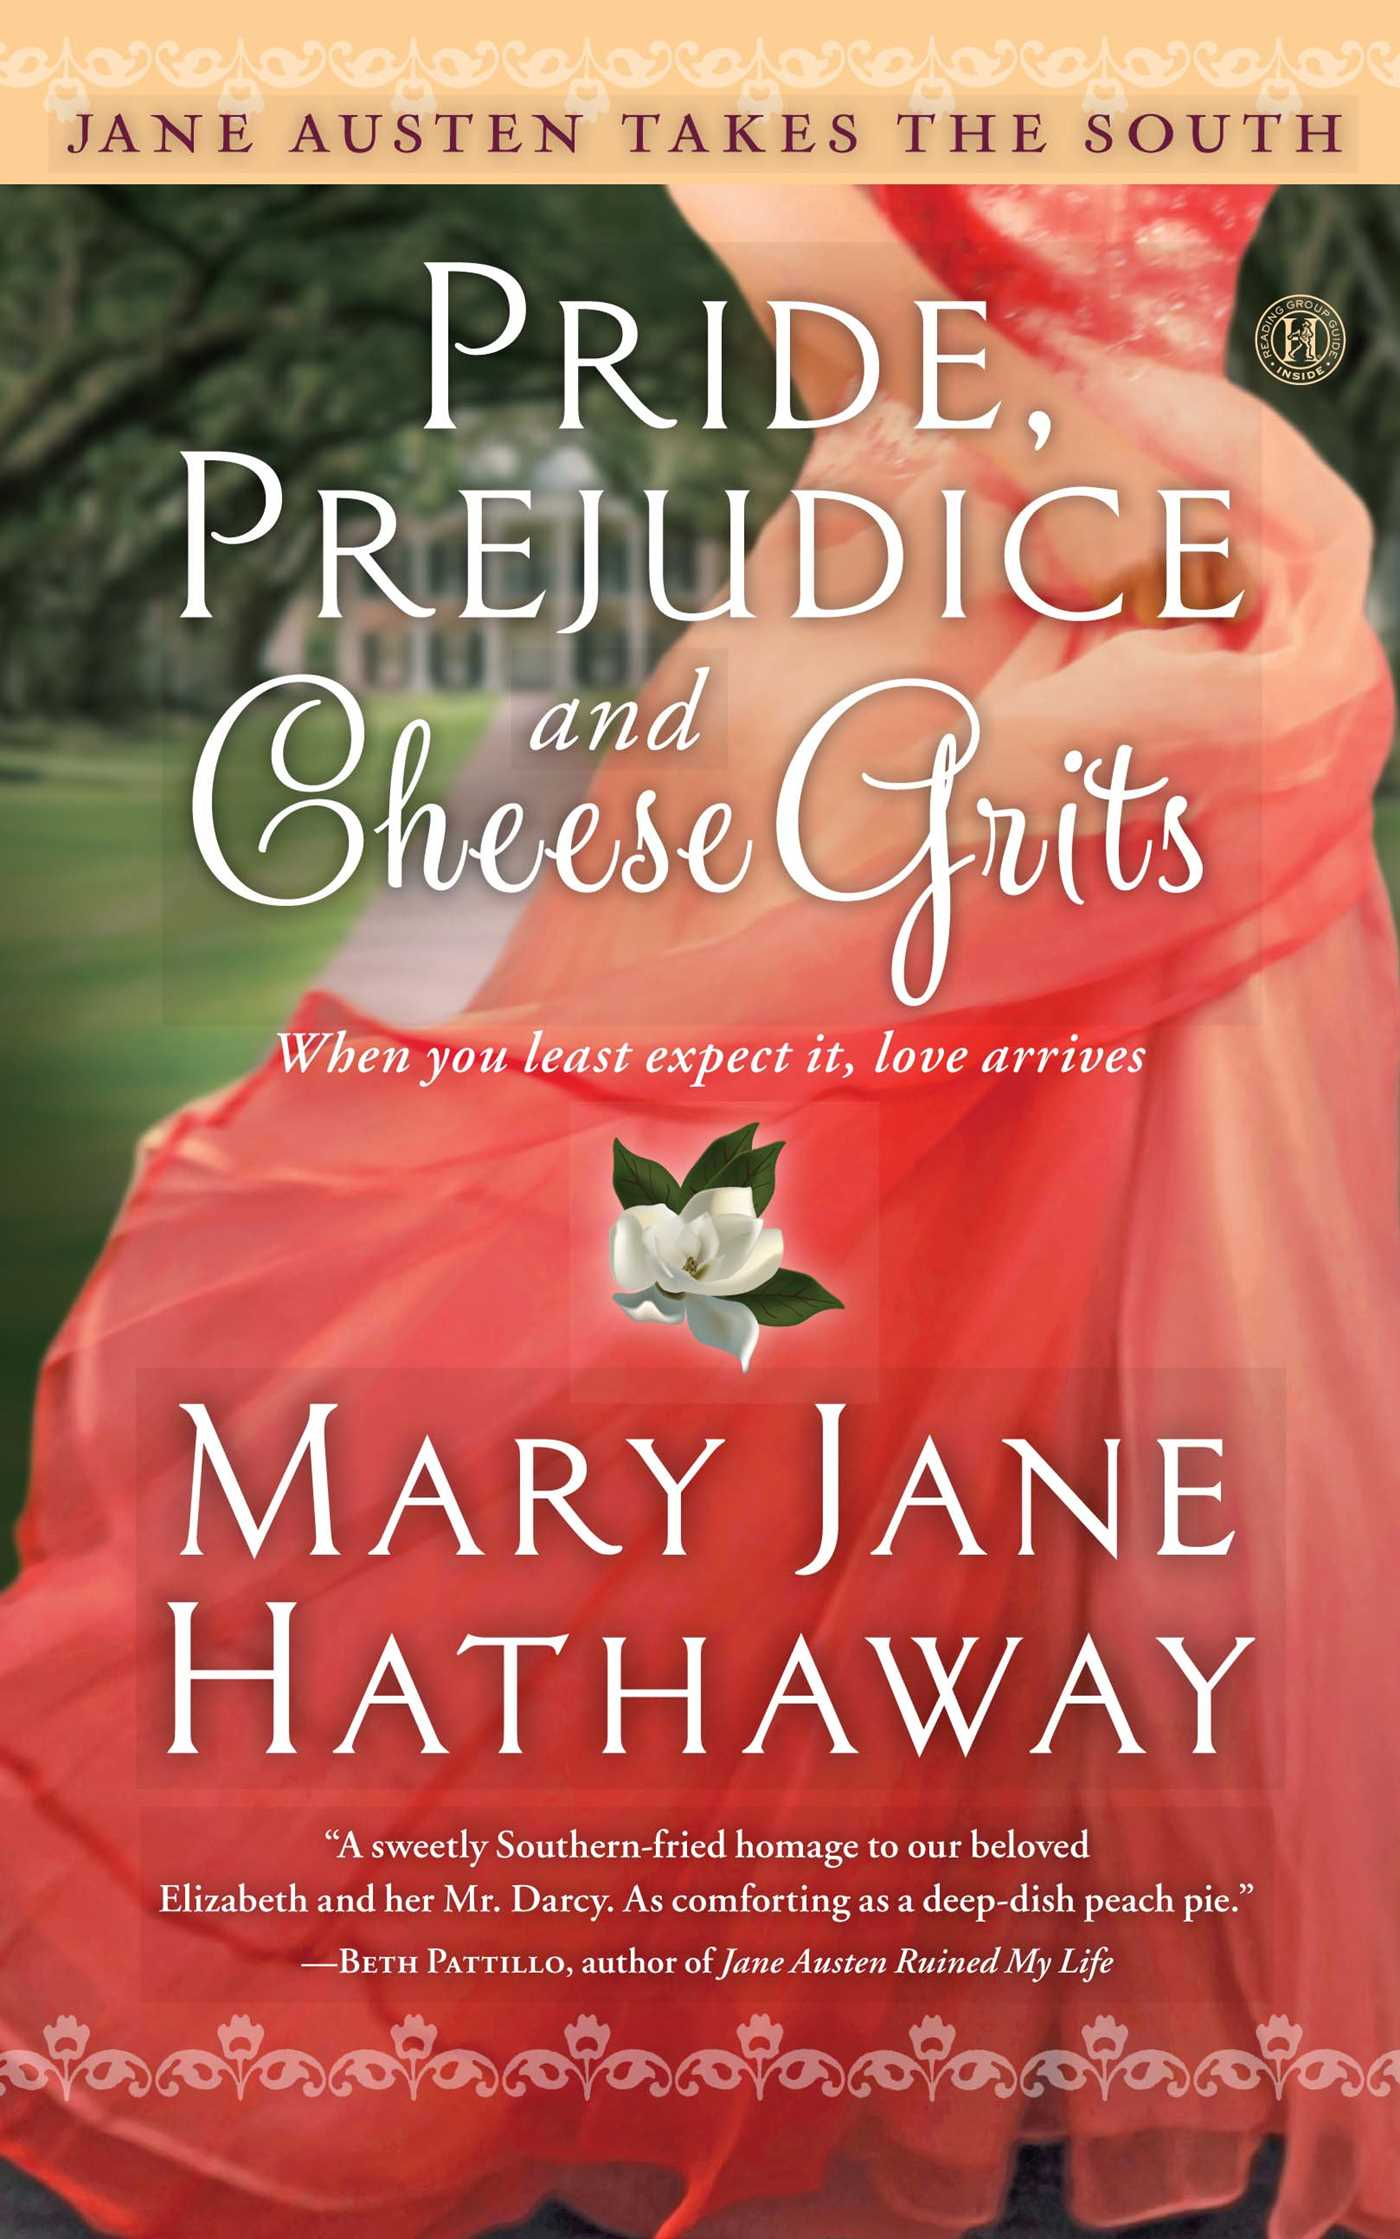 Pride-prejudice-and-cheese-grits-9781476776927_hr